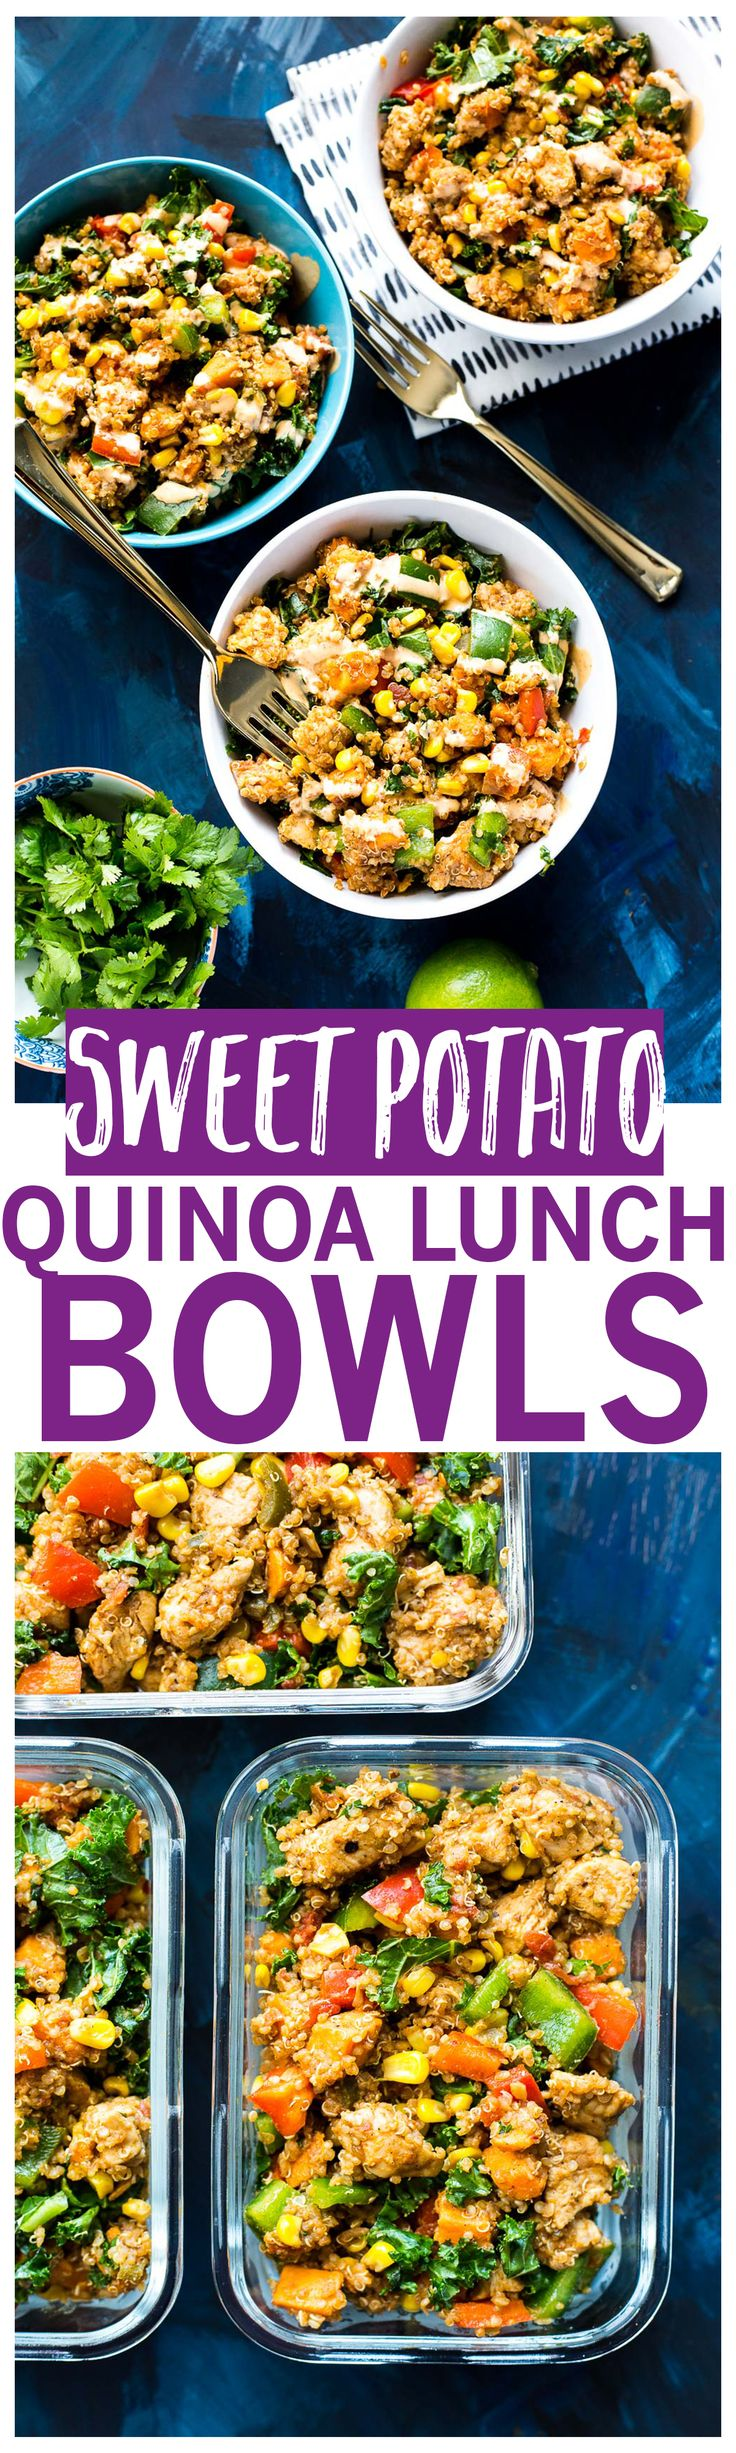 Sweet Potato, Kale & Quinoa Lunch Bowls   Chipotle Sauce   Take 45 min to meal prep this weekend!